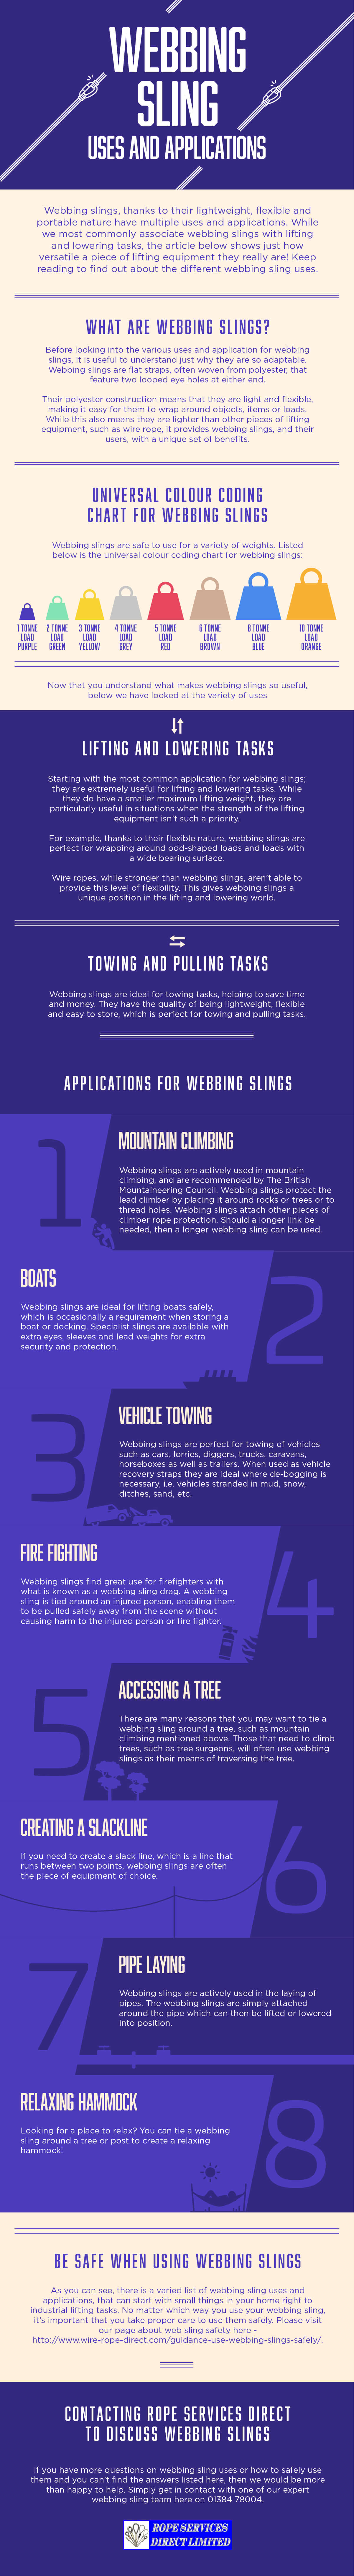 Webbing Sling Uses & Applications Infographic - Rope Services Direct